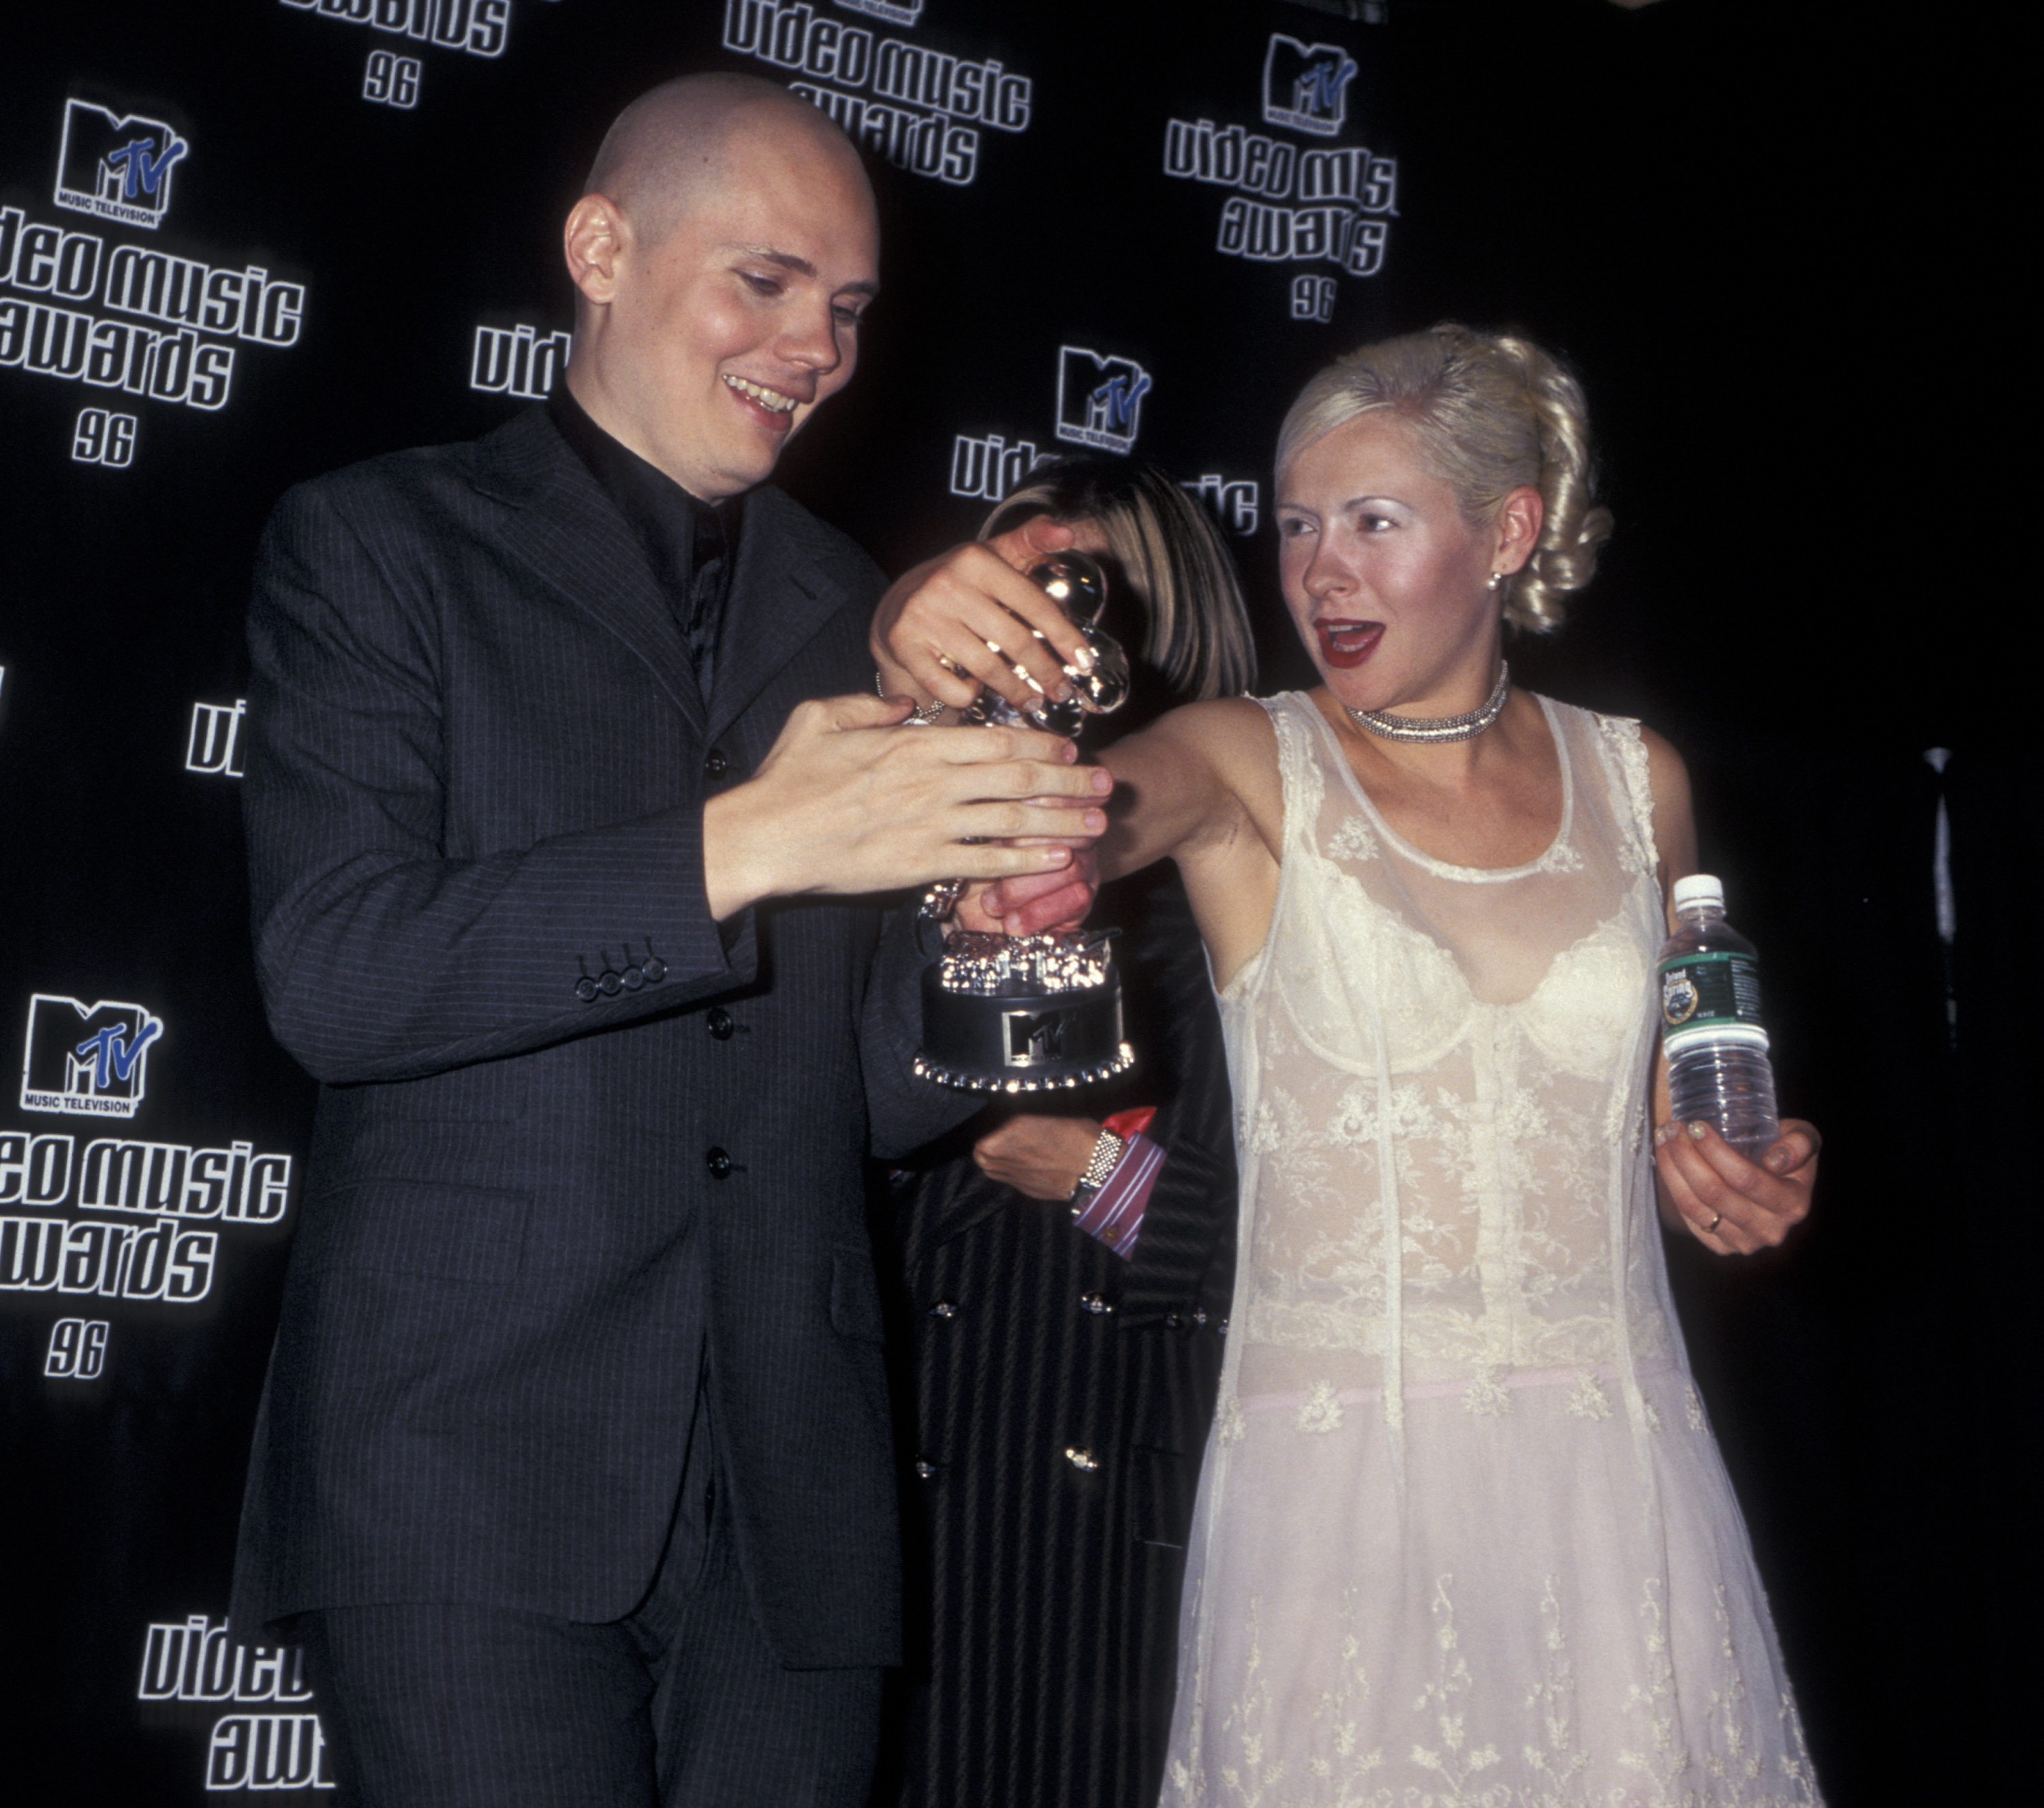 Musicians Billy Corgan, D'arcy Wretzky and James Iha attending 13th Annual MTV Video Music Awards on September 4, 1996 at Radio City Music Hall in New York City, New York. (Photo by Ron Galella, Ltd./WireImage)